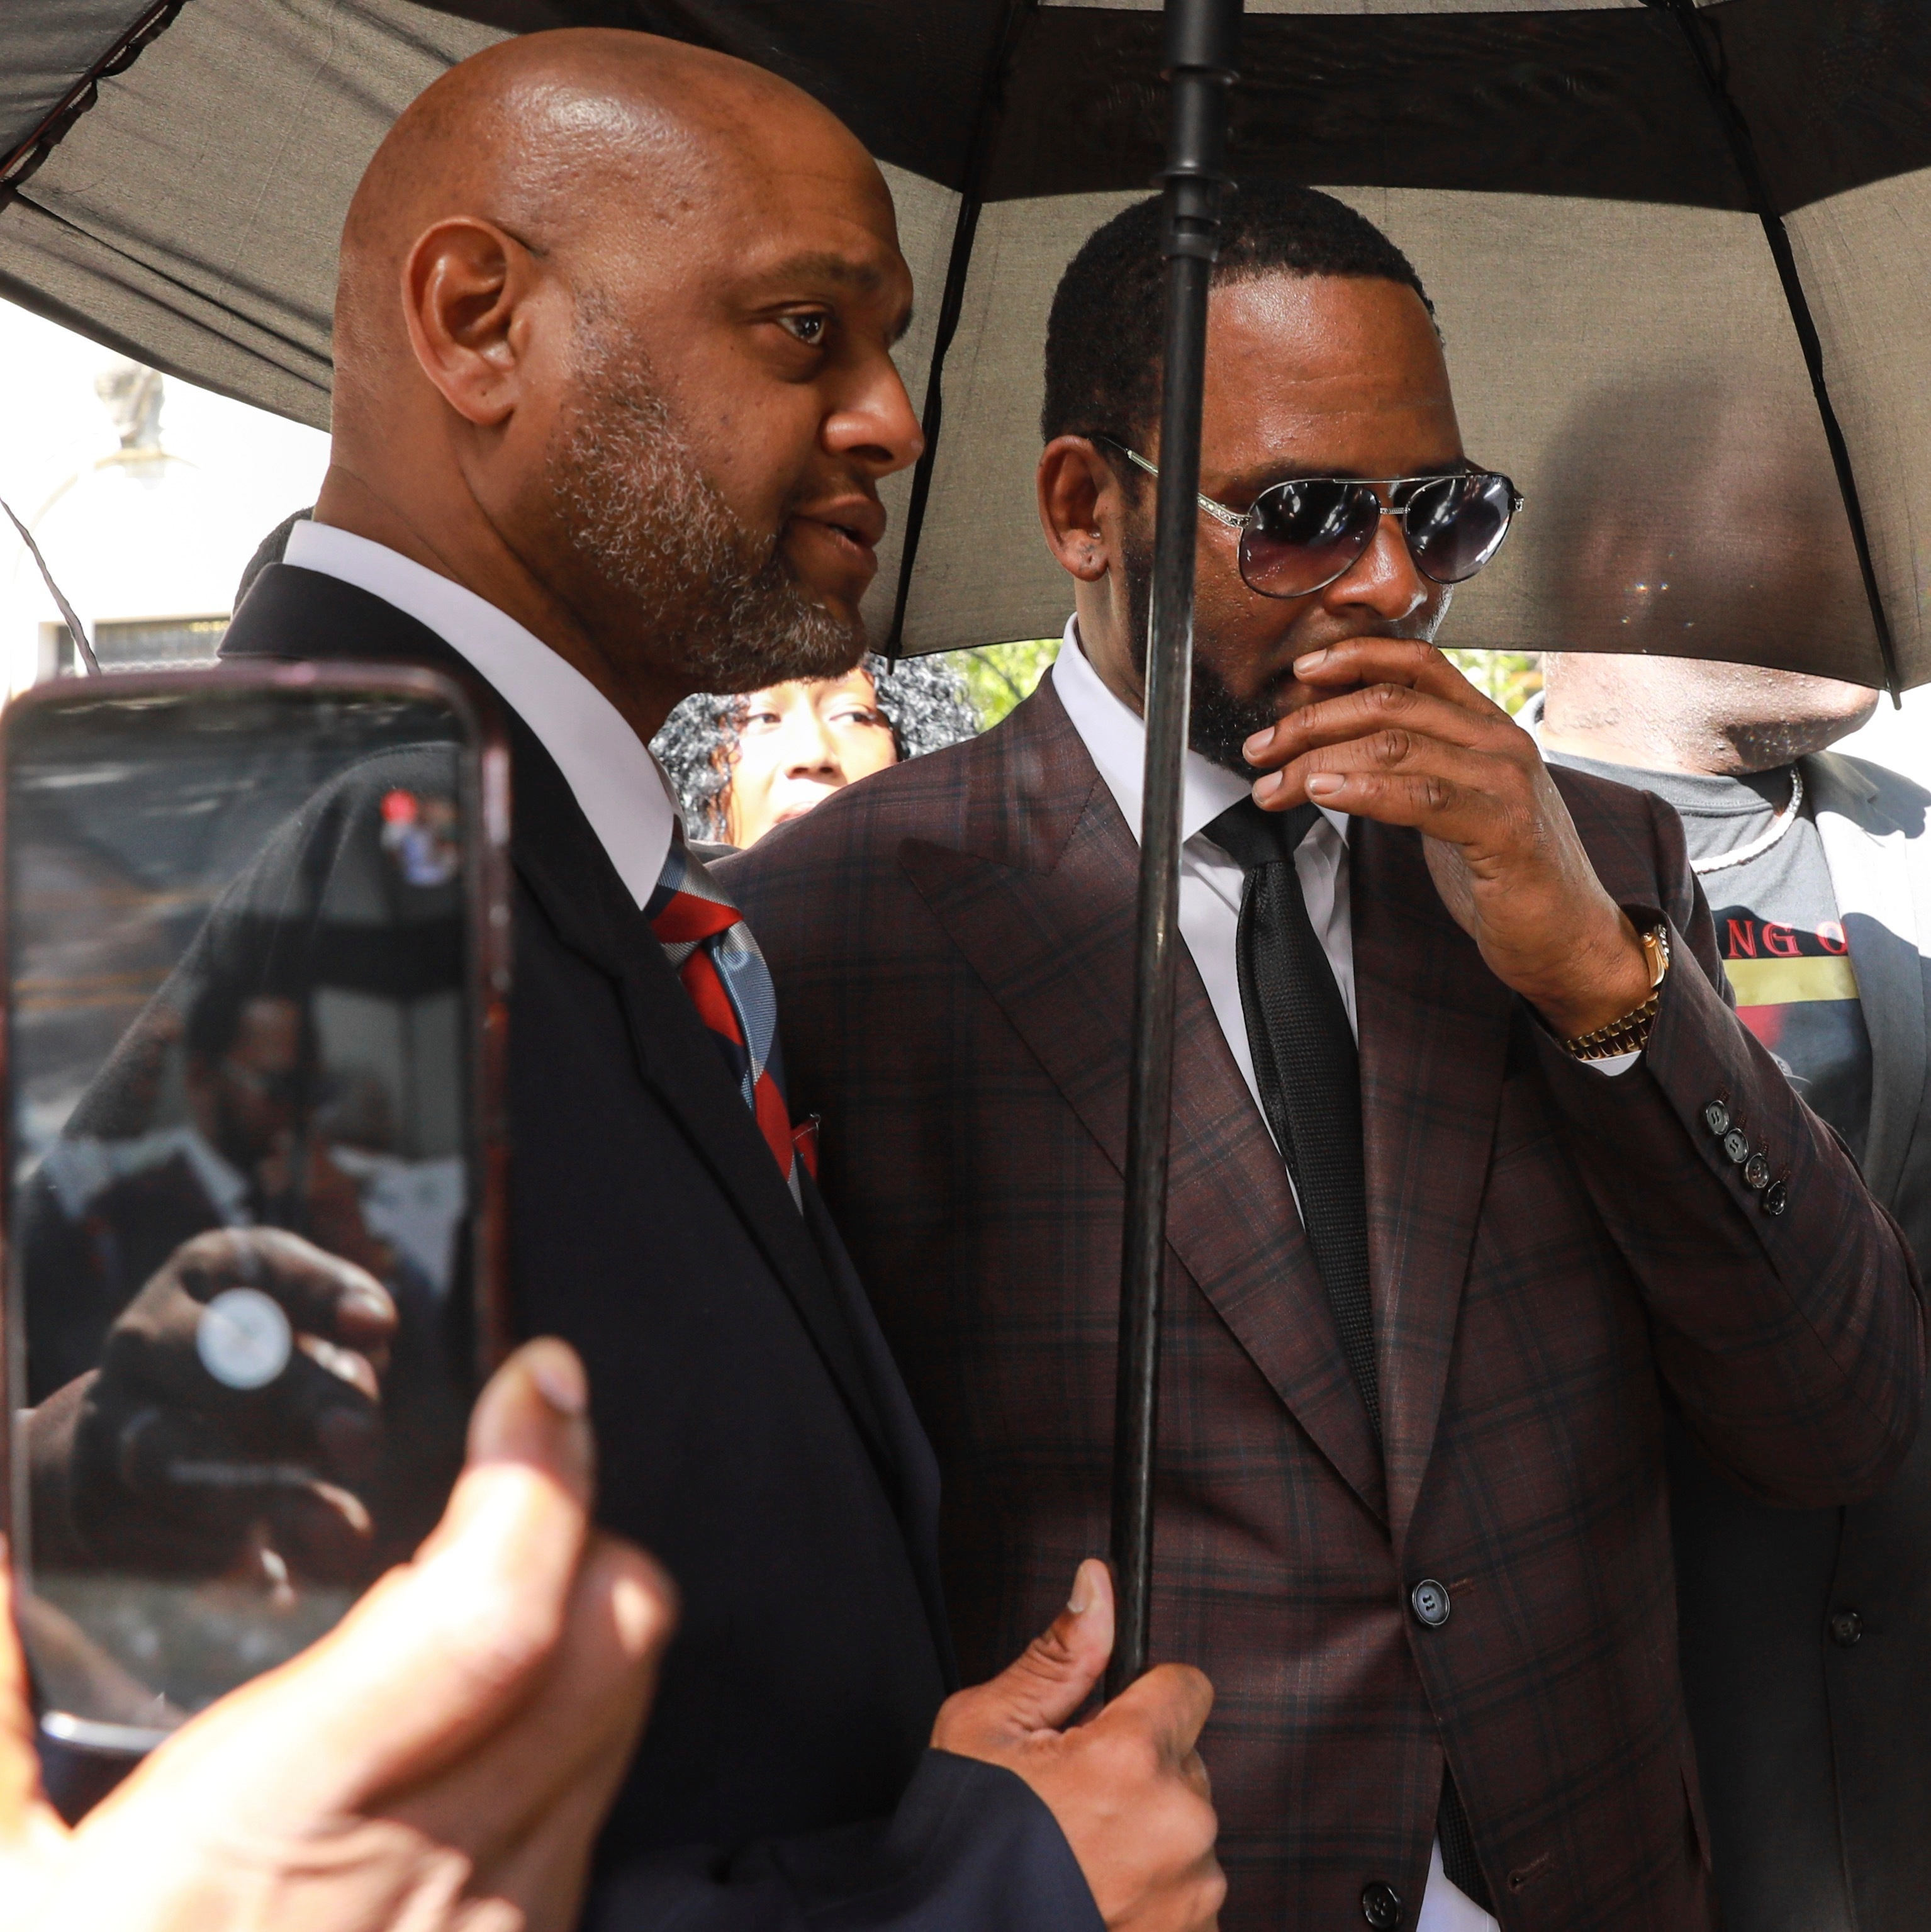 R. Kelly Held Without Bail, Prosecutors Say 'Risk Is Ongoing'